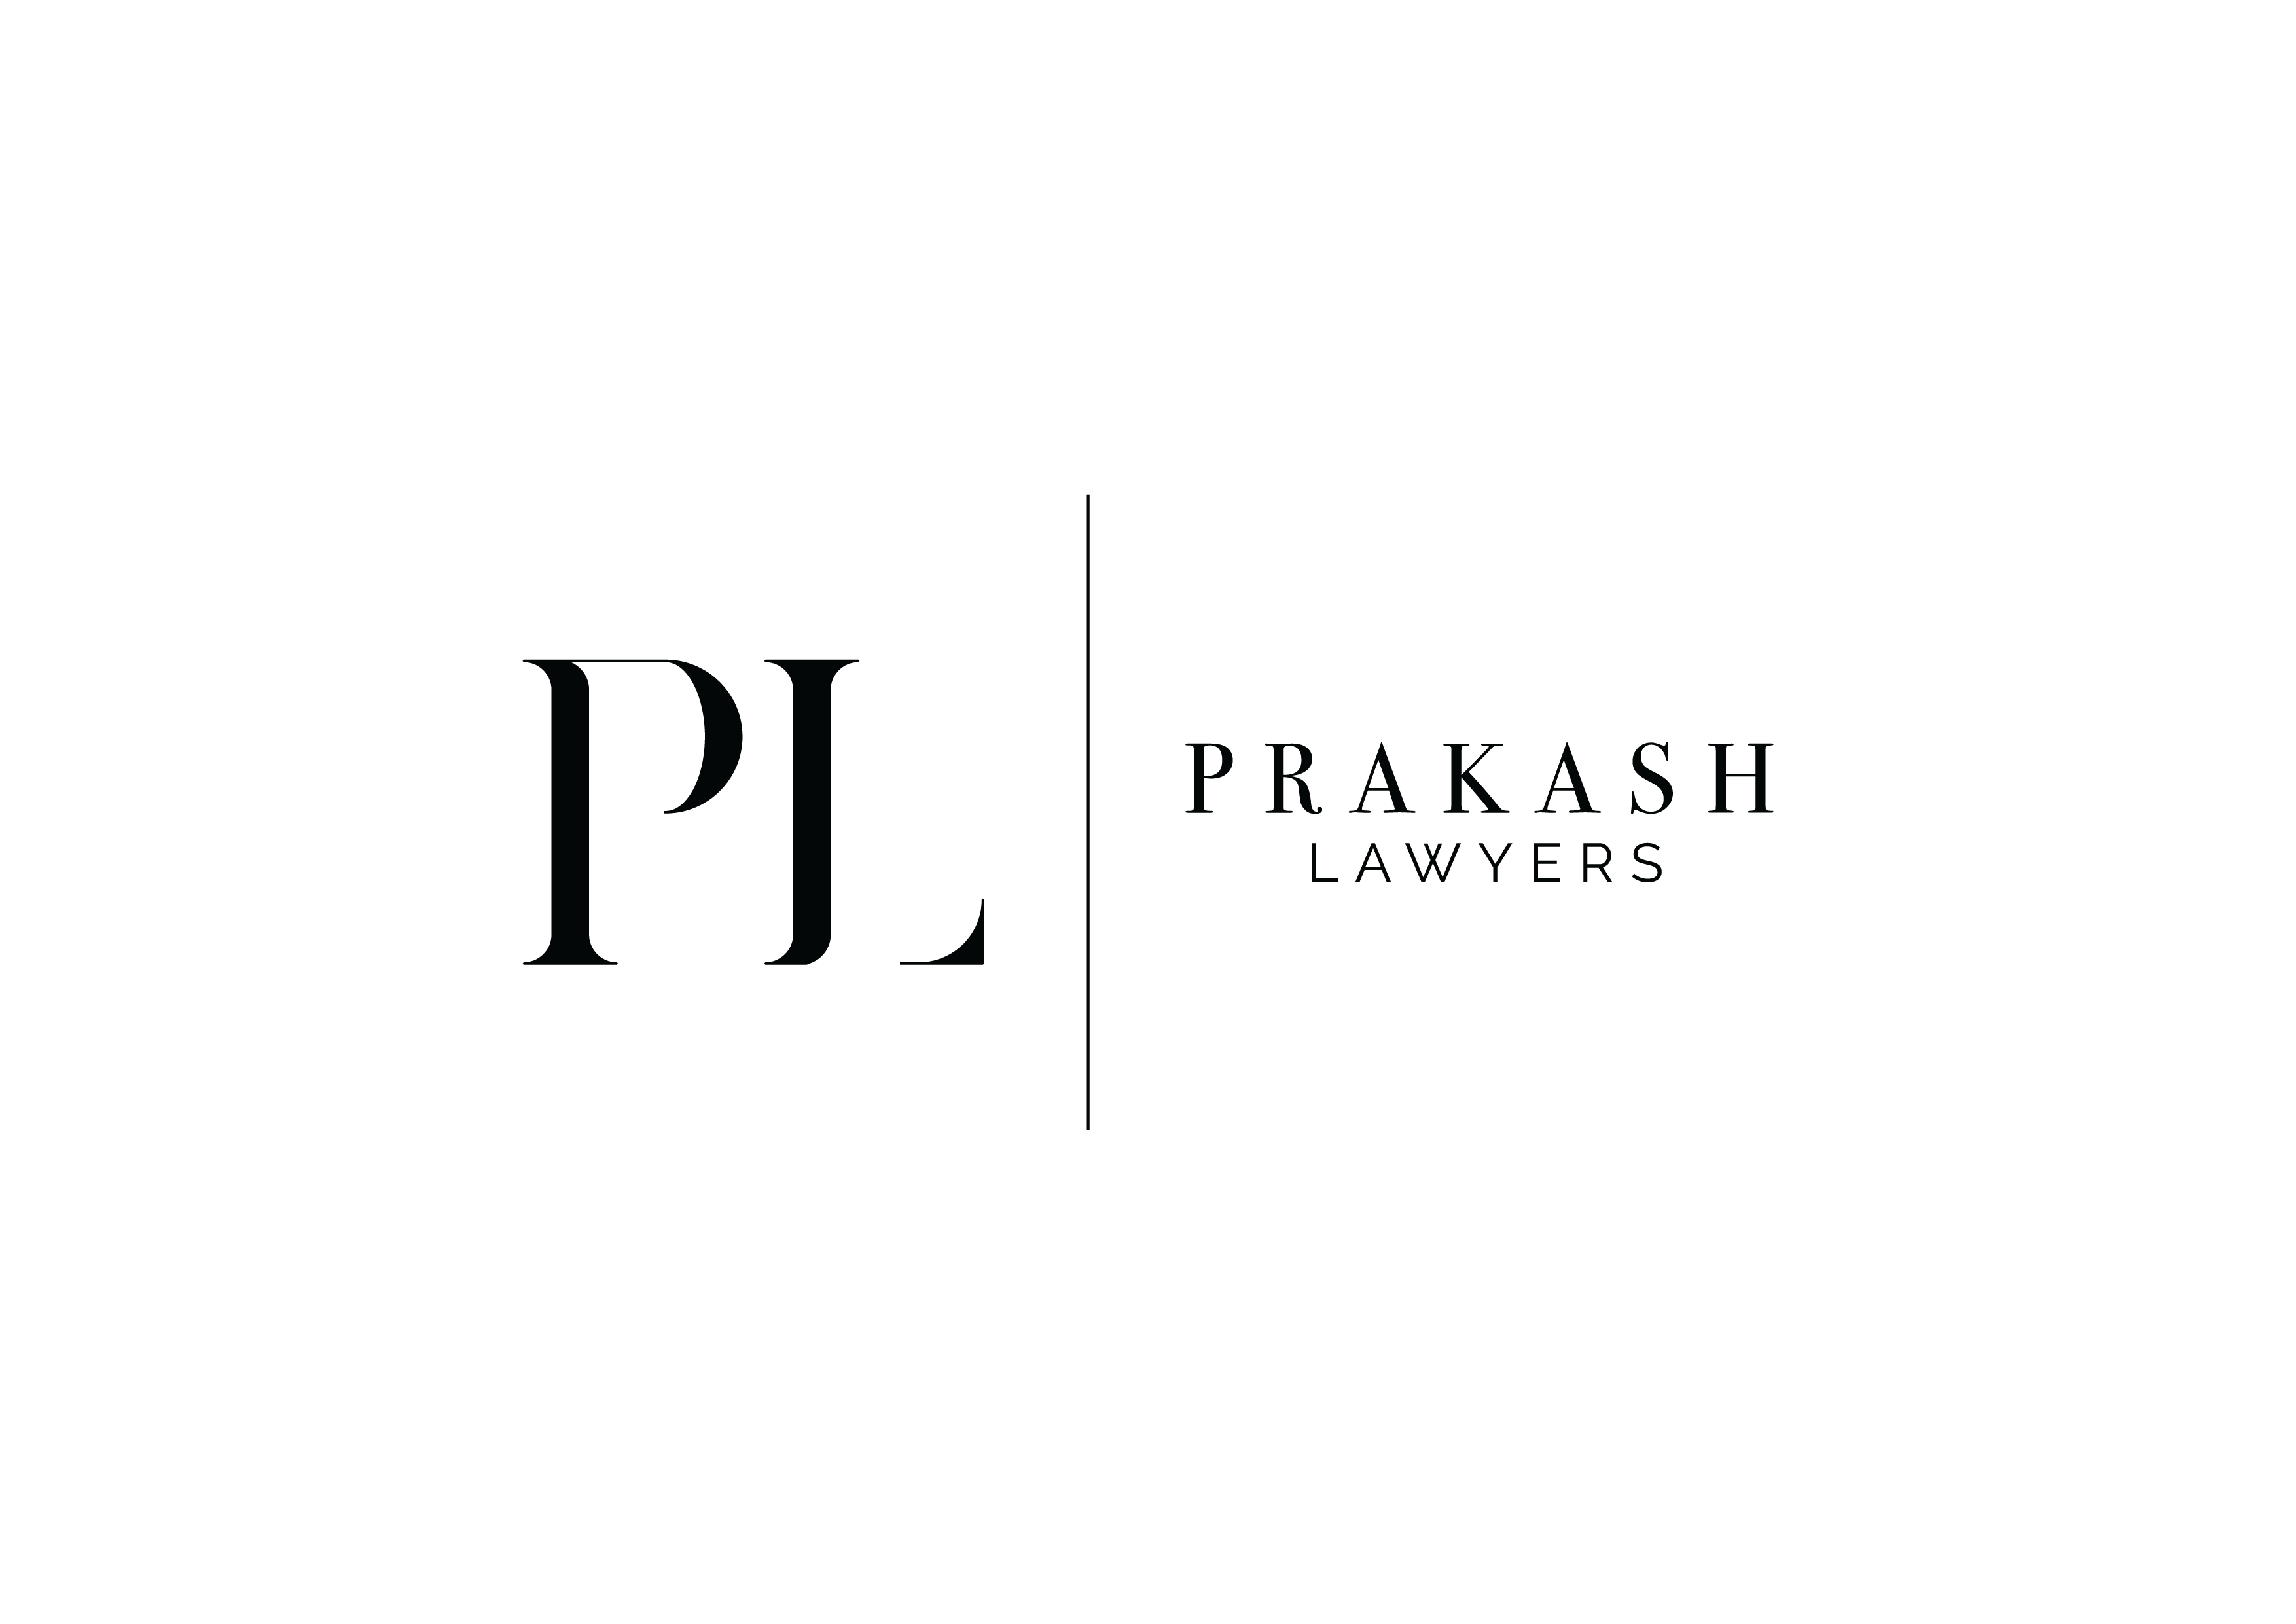 Prakash Lawyers